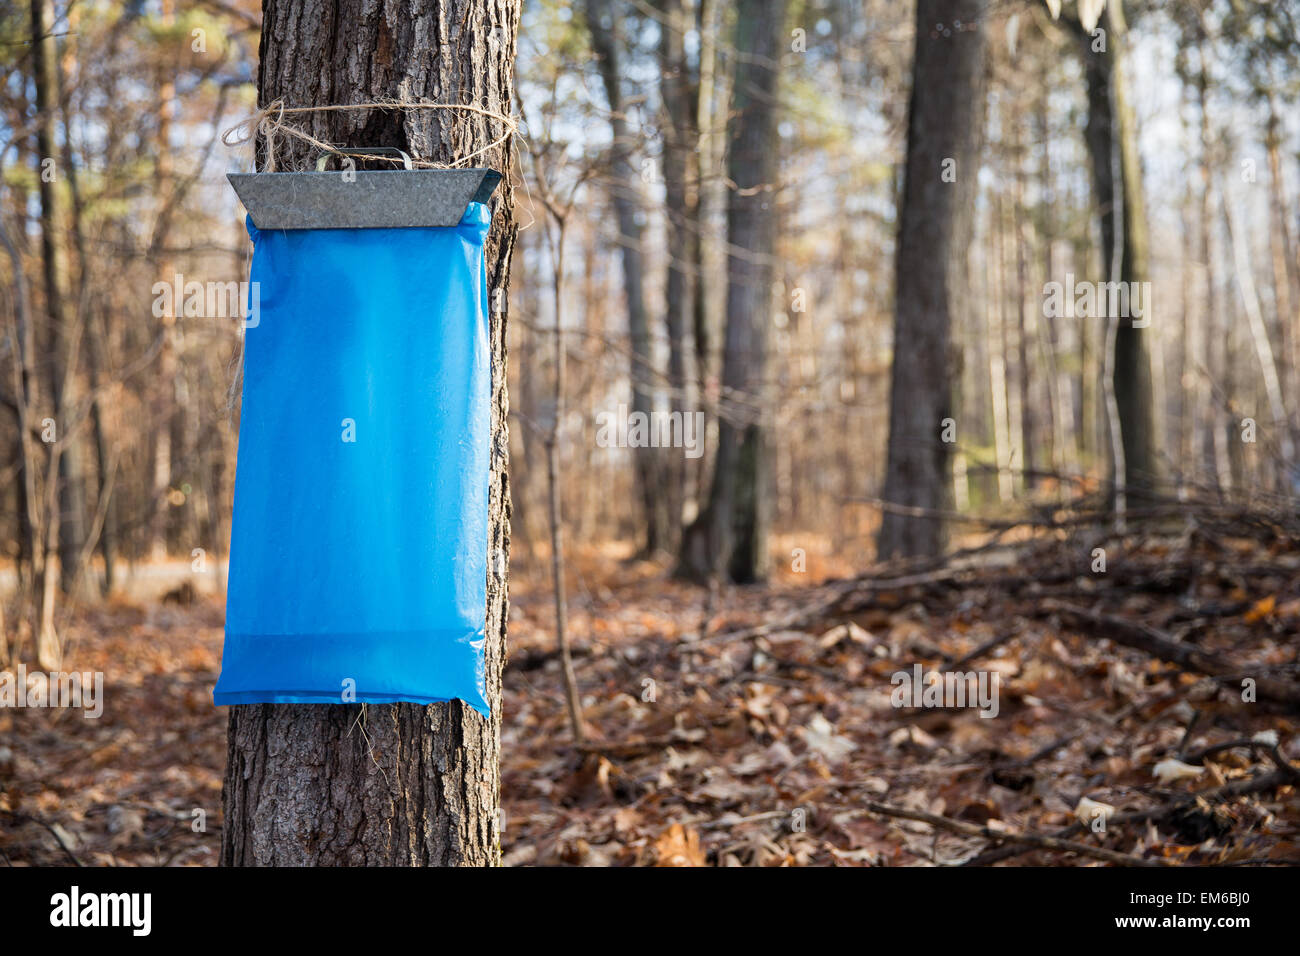 Tapping maple trees in the Spring to make maple syrup.  Early morning light and selective focus on the blue collection - Stock Image